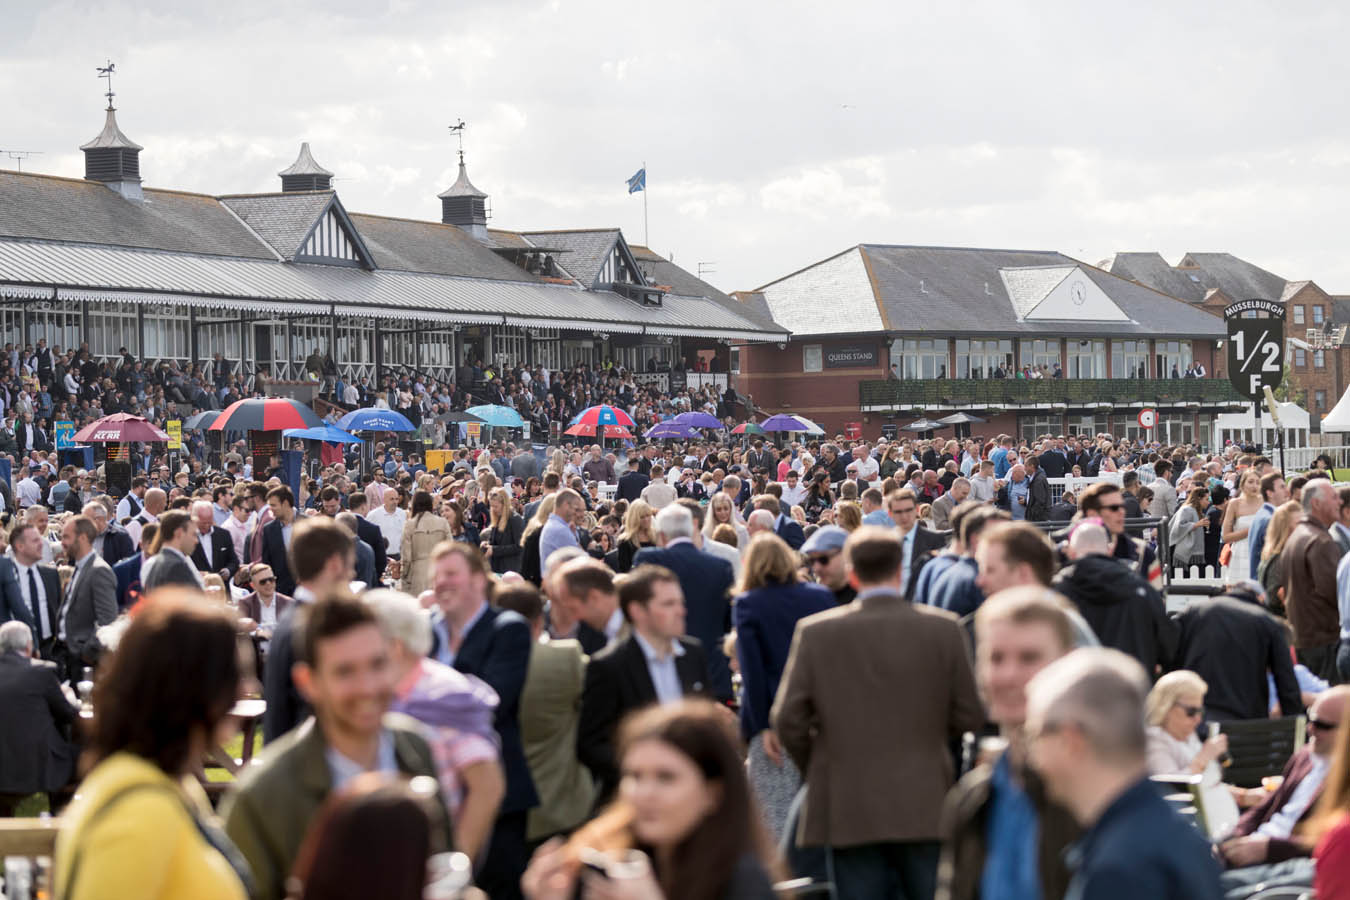 Musselburgh Racecourse is Officially Accessible To All